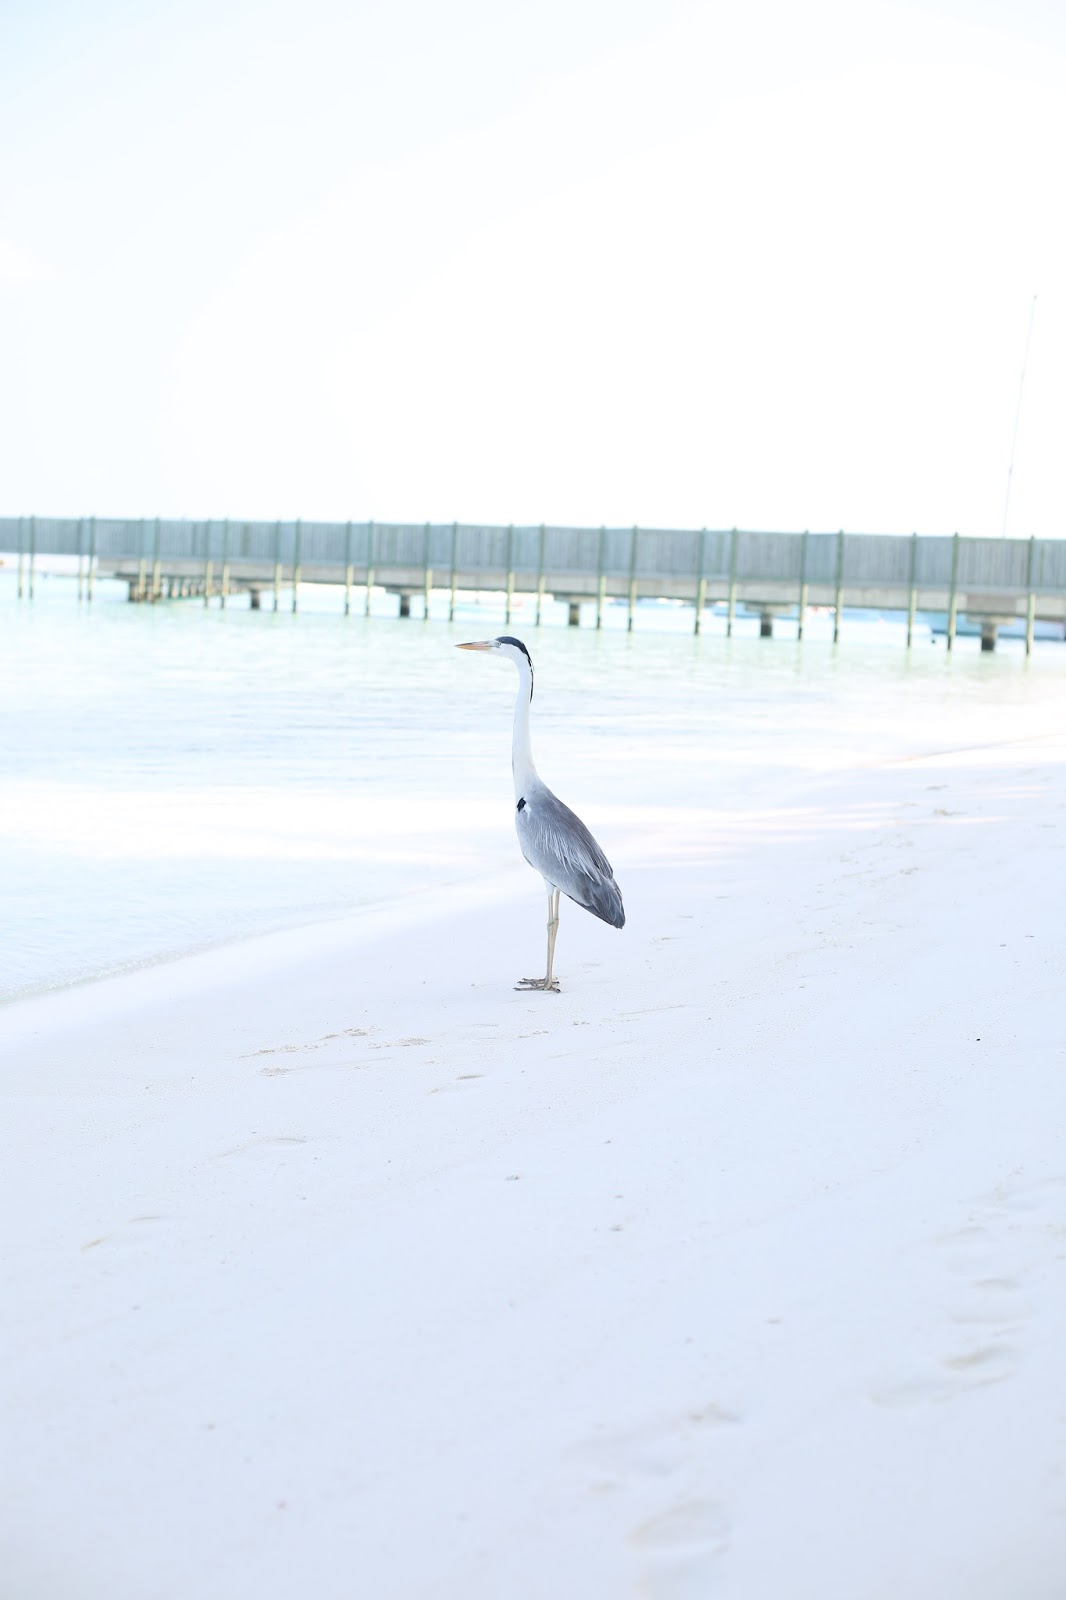 Maldives birds